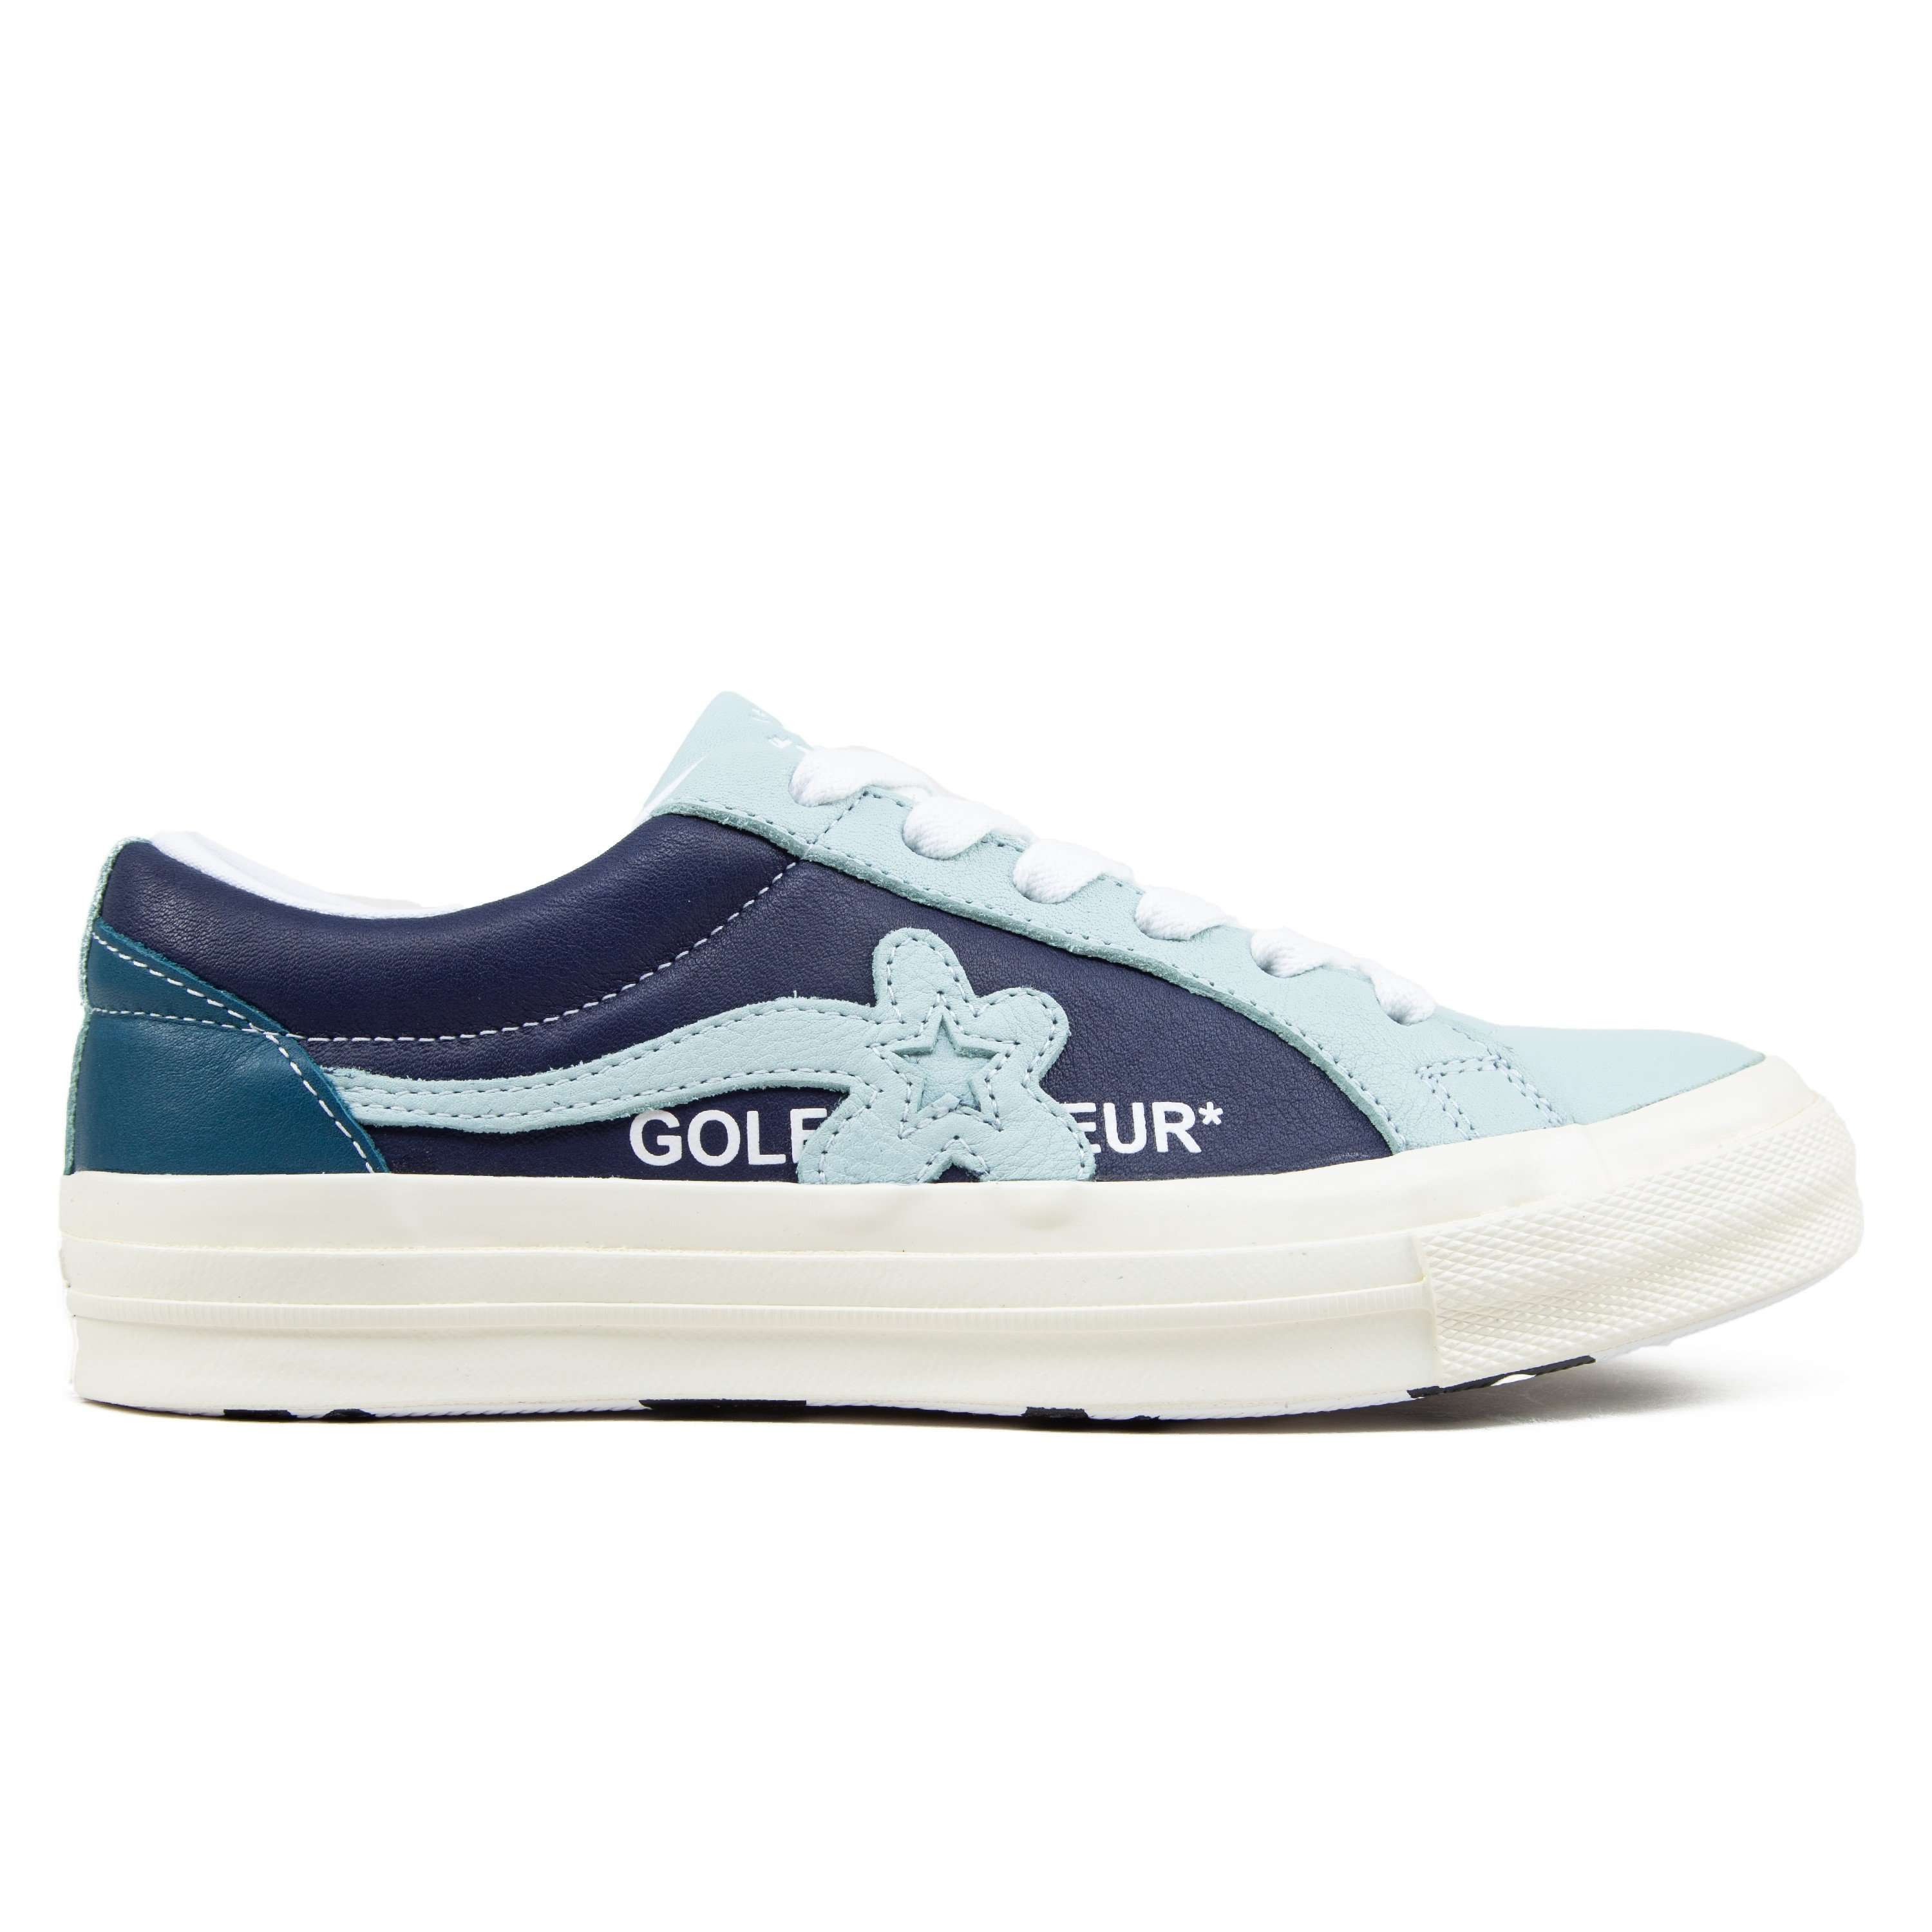 1e287bafd0c2 Converse x Golf Le Fleur One Star OX  Industrial Pack  (Barely Blue ...